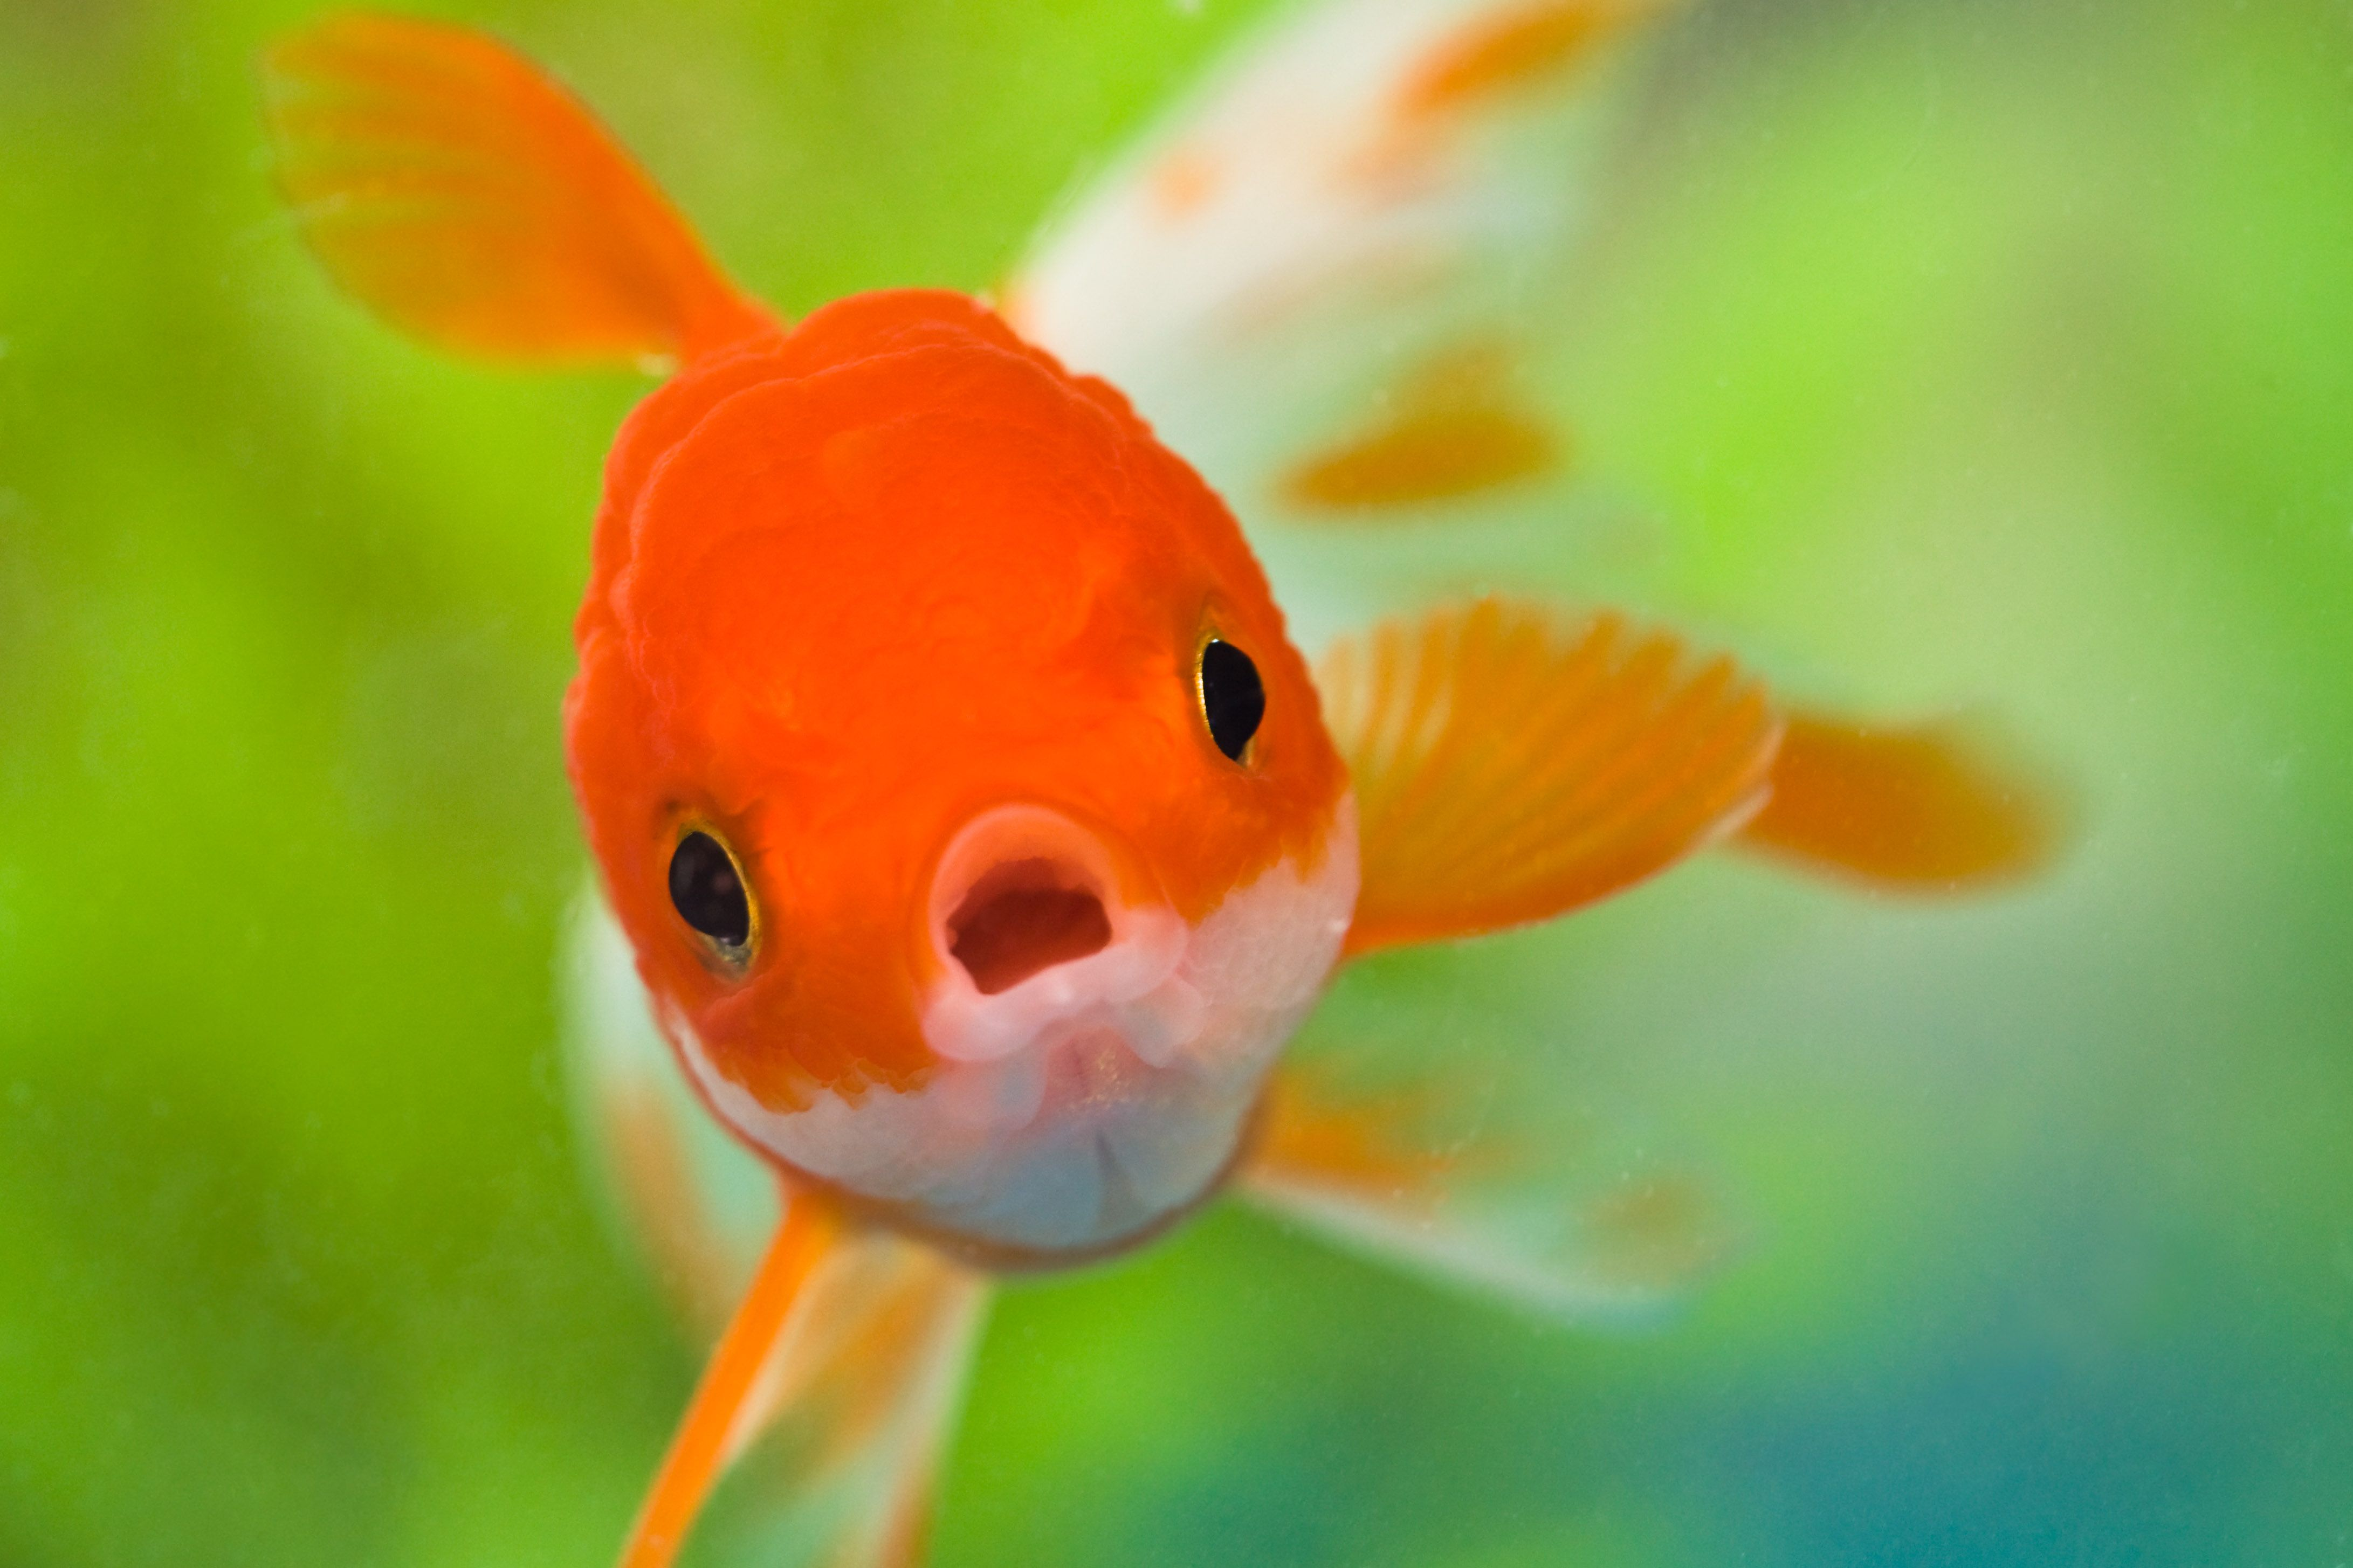 Tips for photographing fish in an aquarium